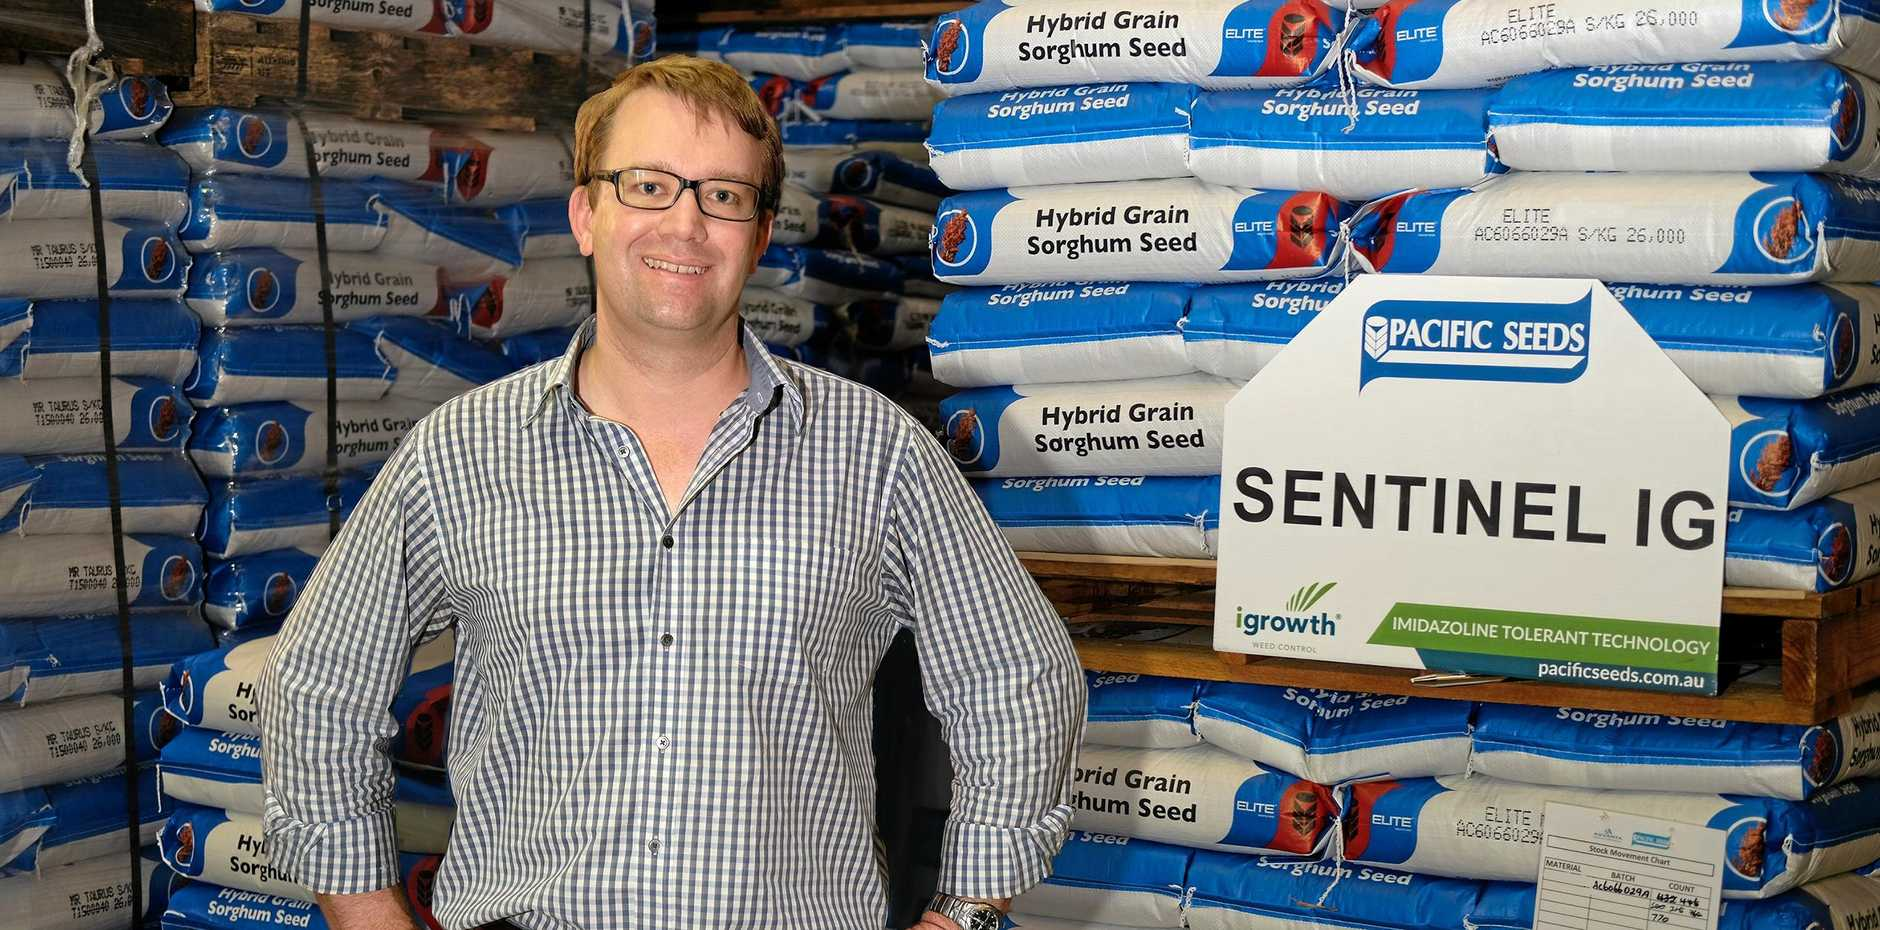 NEW TECHNOLOGY: Pacific Seeds' Andrew Short with new grain sorghum variety Sentinal IG.